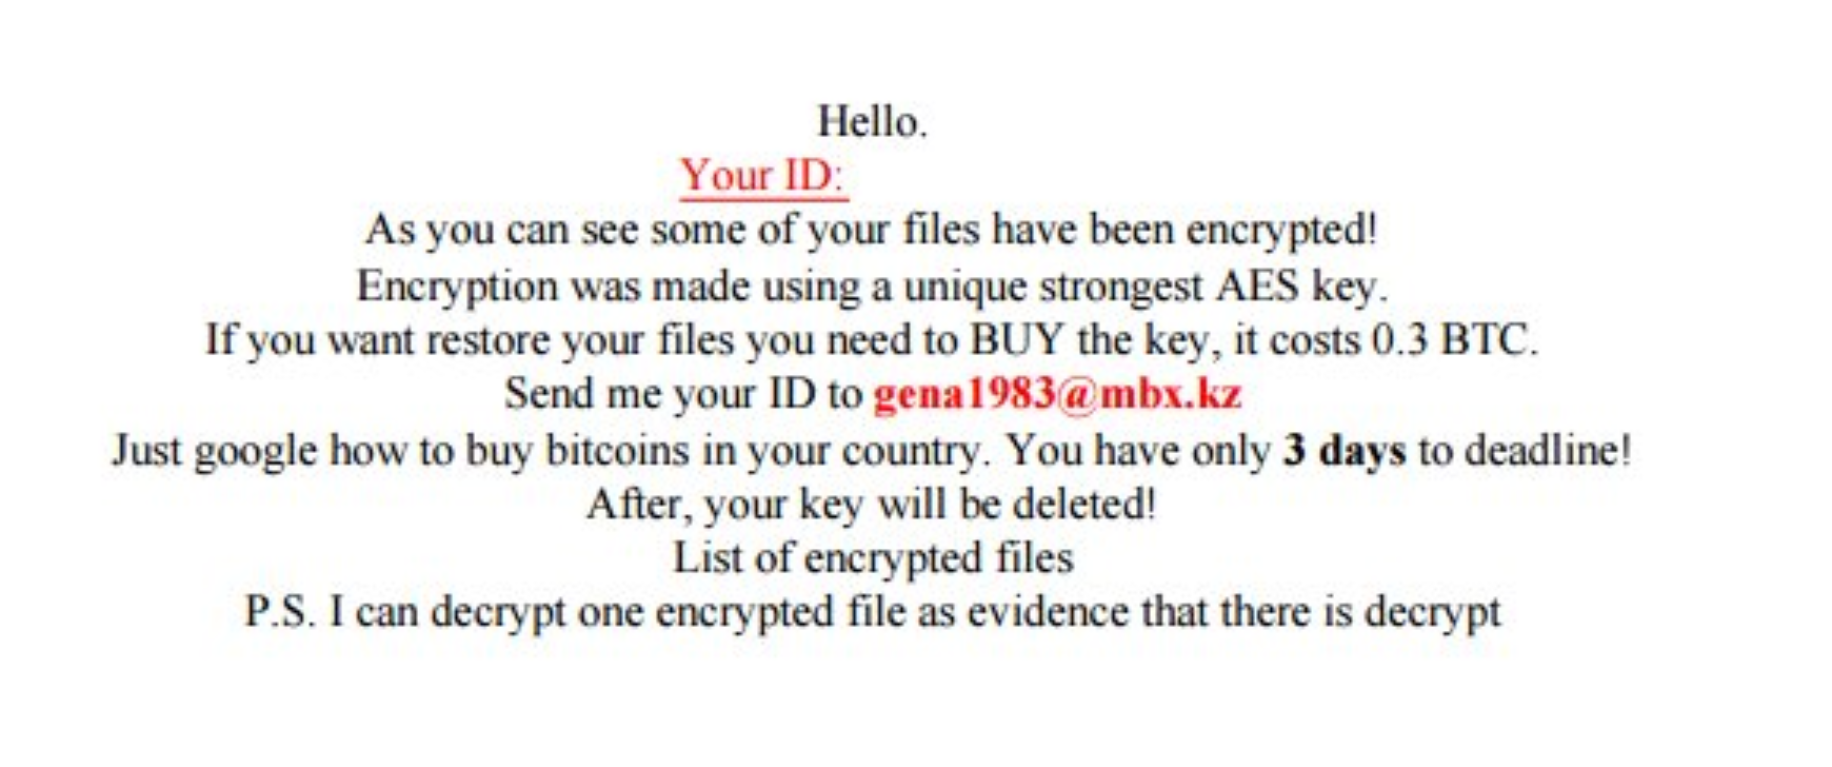 evil-lock-ransomware-evillock-virus-js-evil-javascript-gena1983-ransom-message-note-bestsecuritysearch